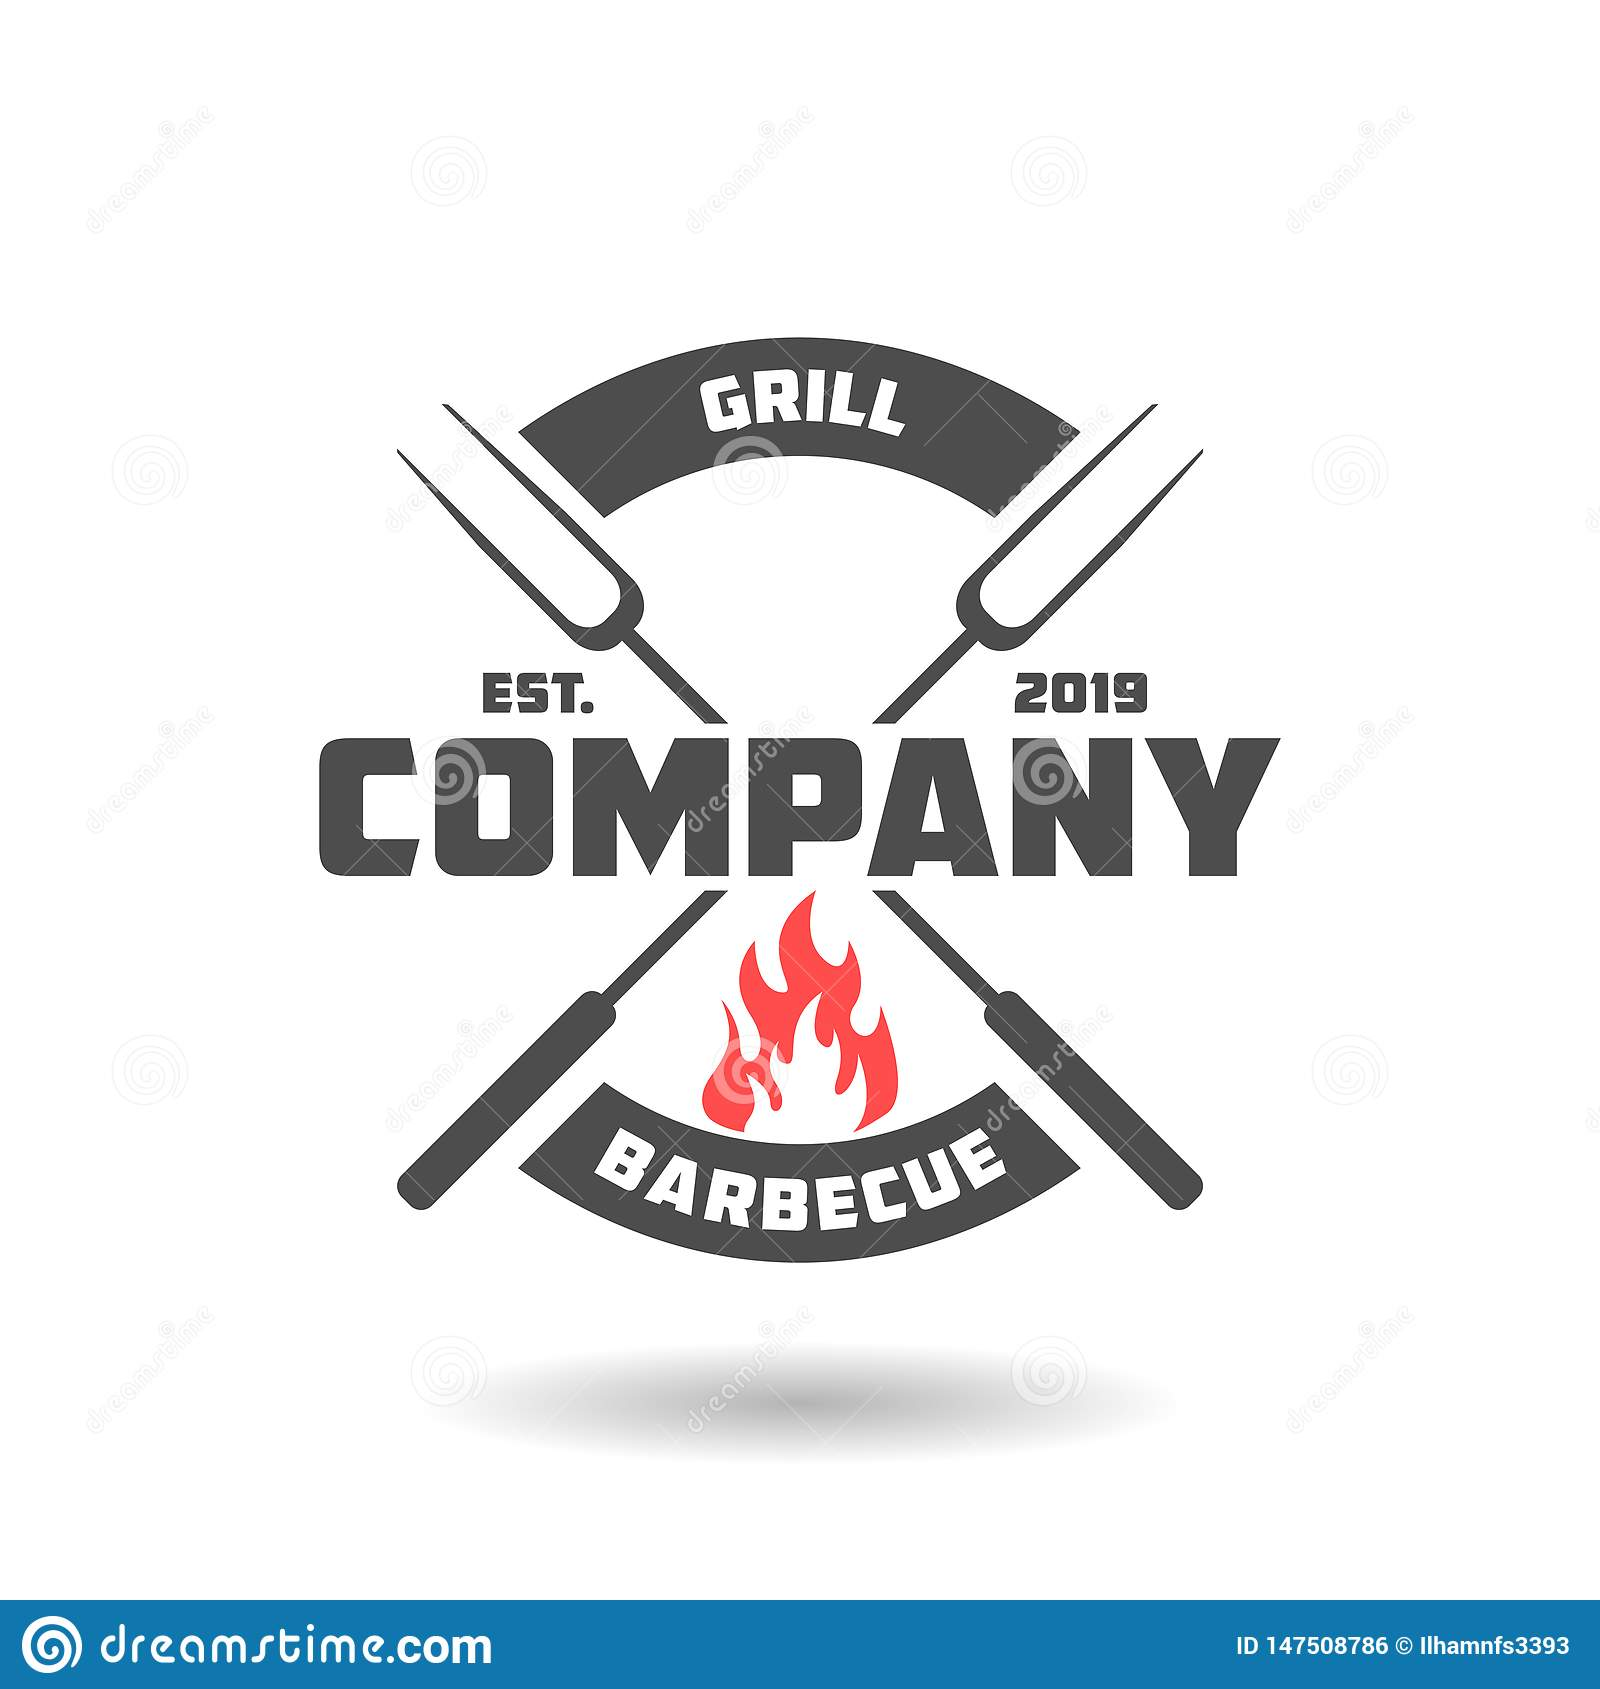 Conception de logo de barbecue